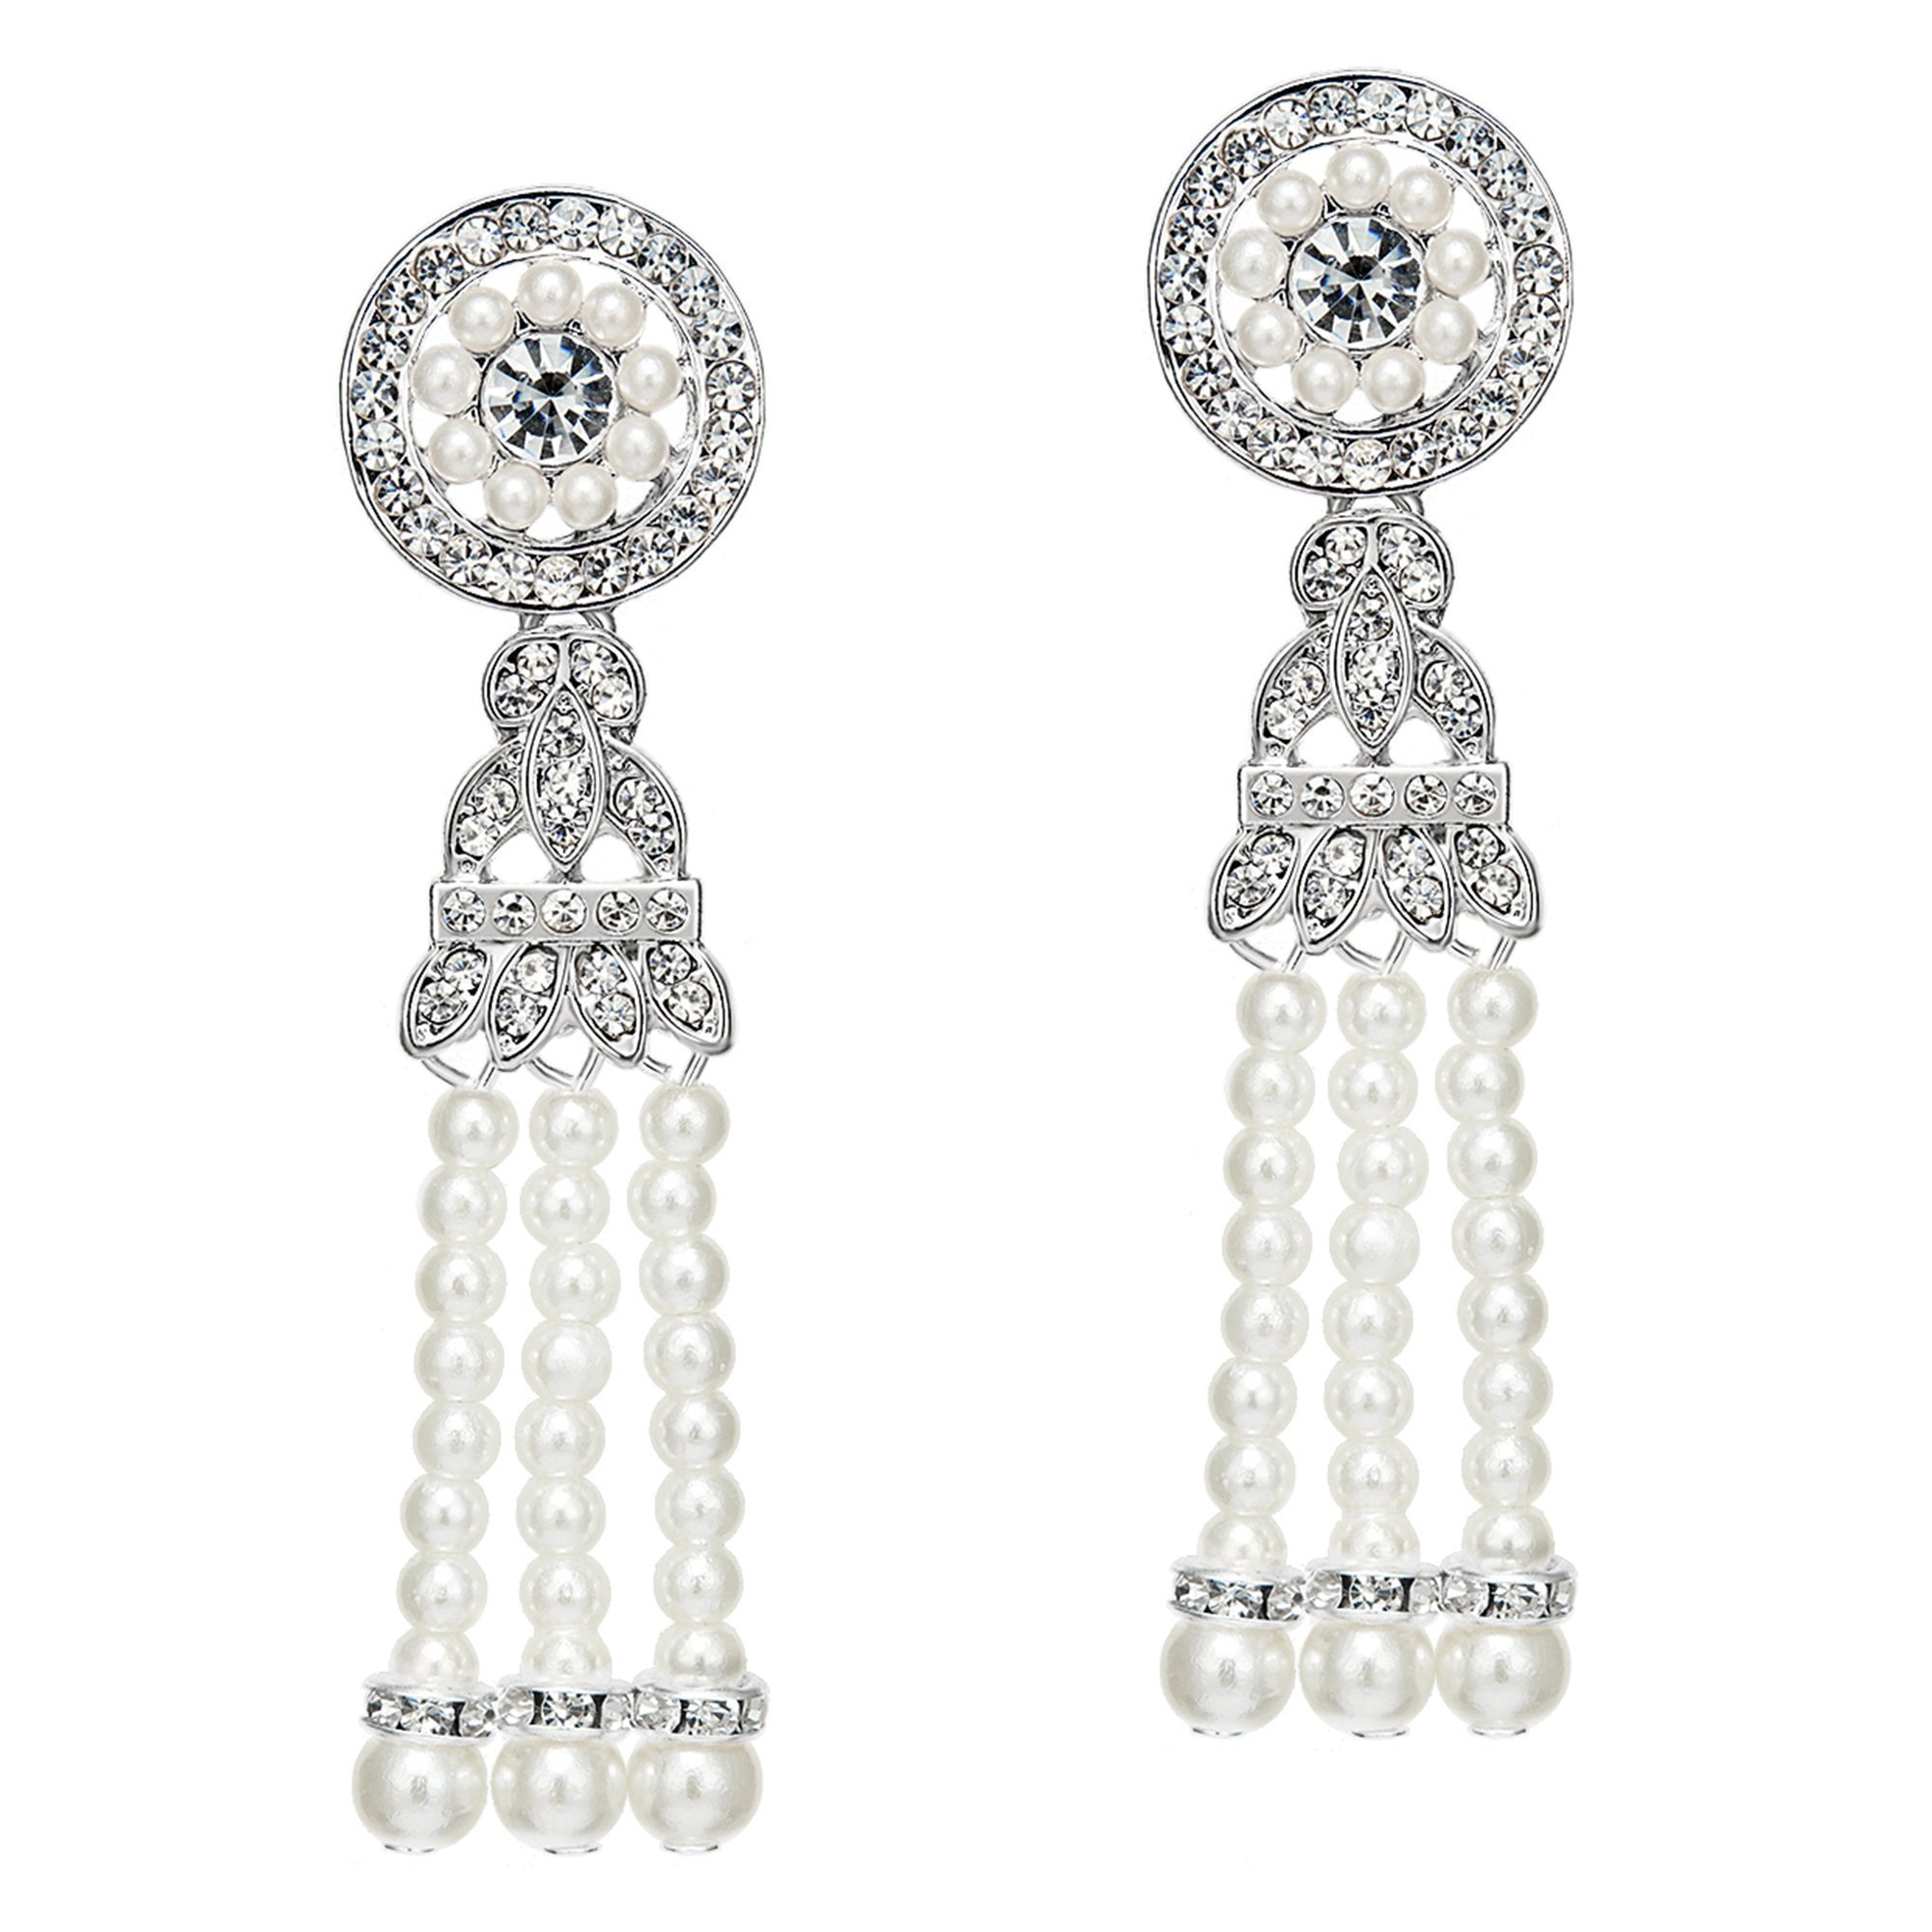 BABEYOND 1920s Flapper Art Deco Gatsby Earrings 20s Flapper Gatsby Accessories (Style 4-Silver)